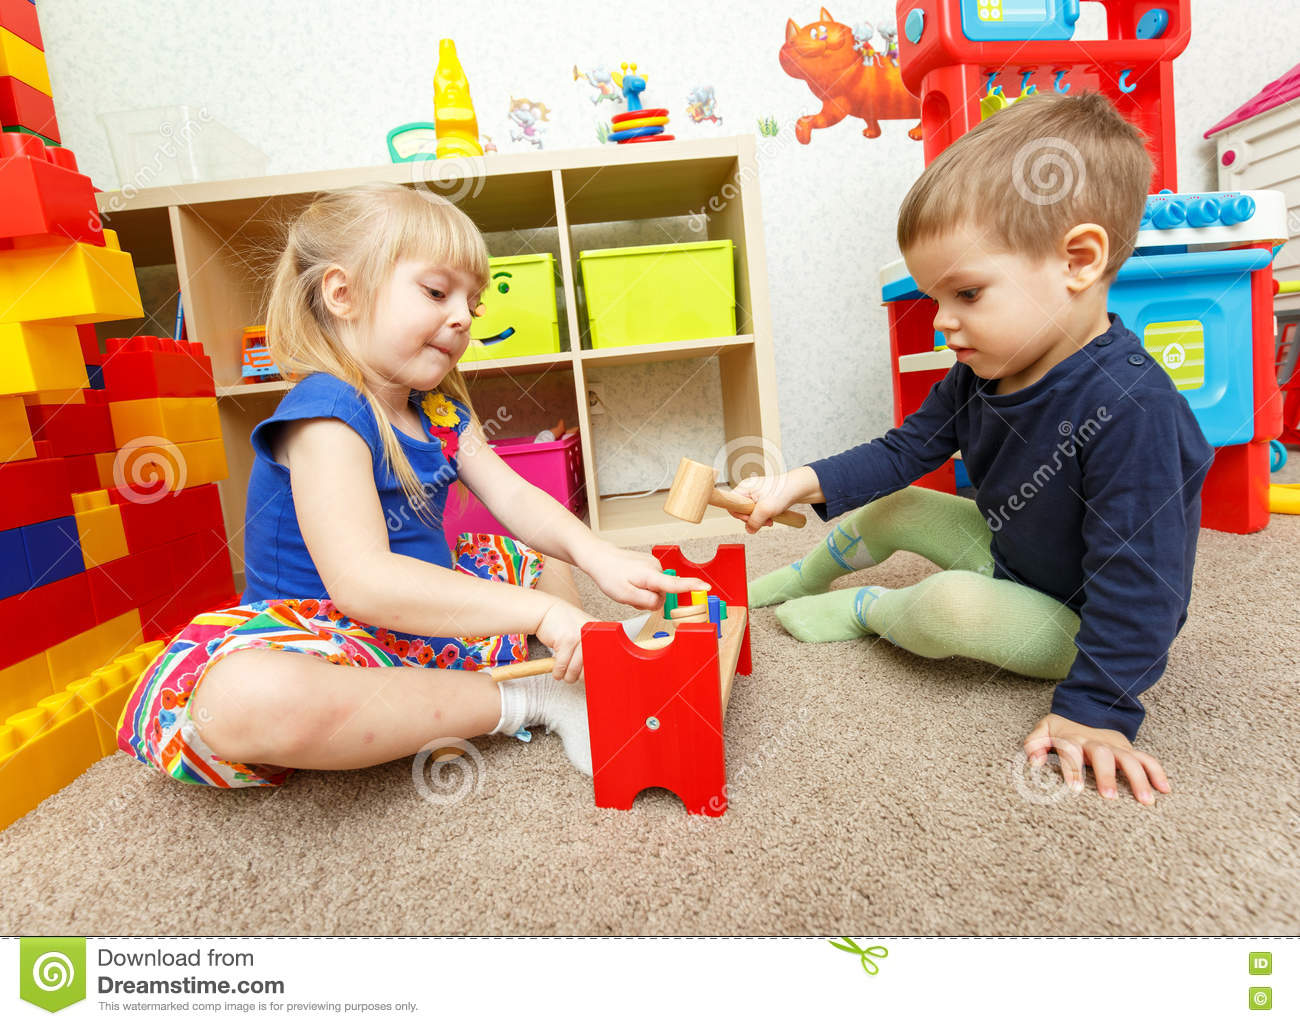 Toys For Boys Kindergarten : Little boy and girl play with toy hammer in kindergarten